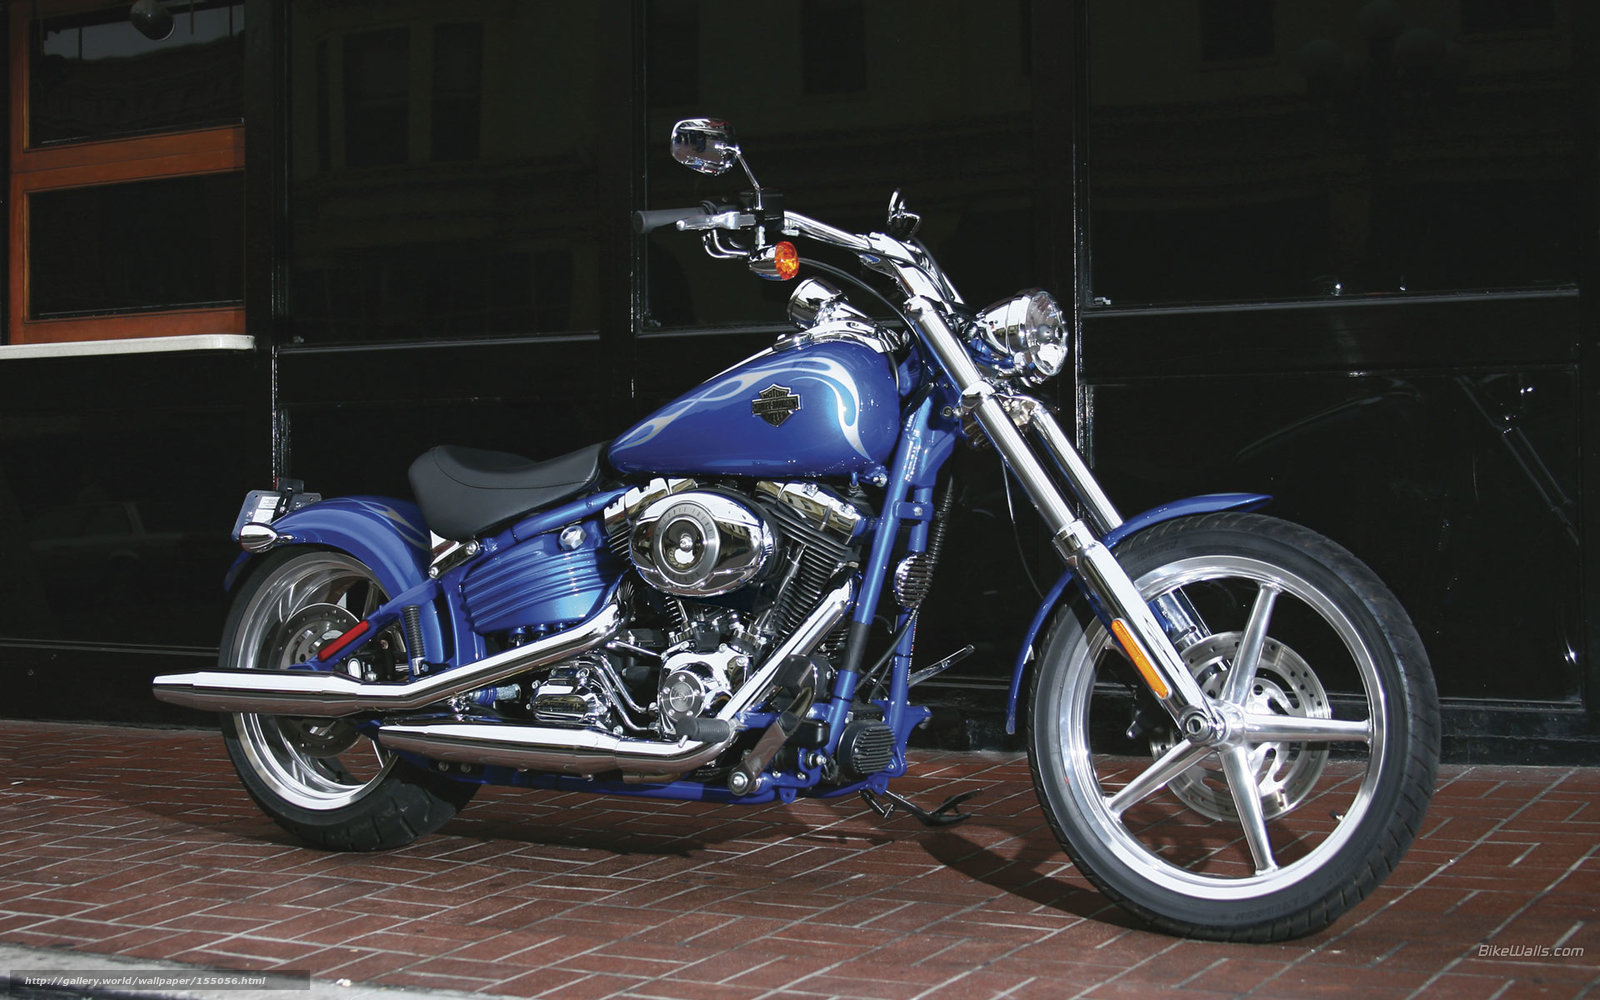 Download wallpaper Harley Davidson Softail FXCWC Rocker C FXCWC 1600x1000